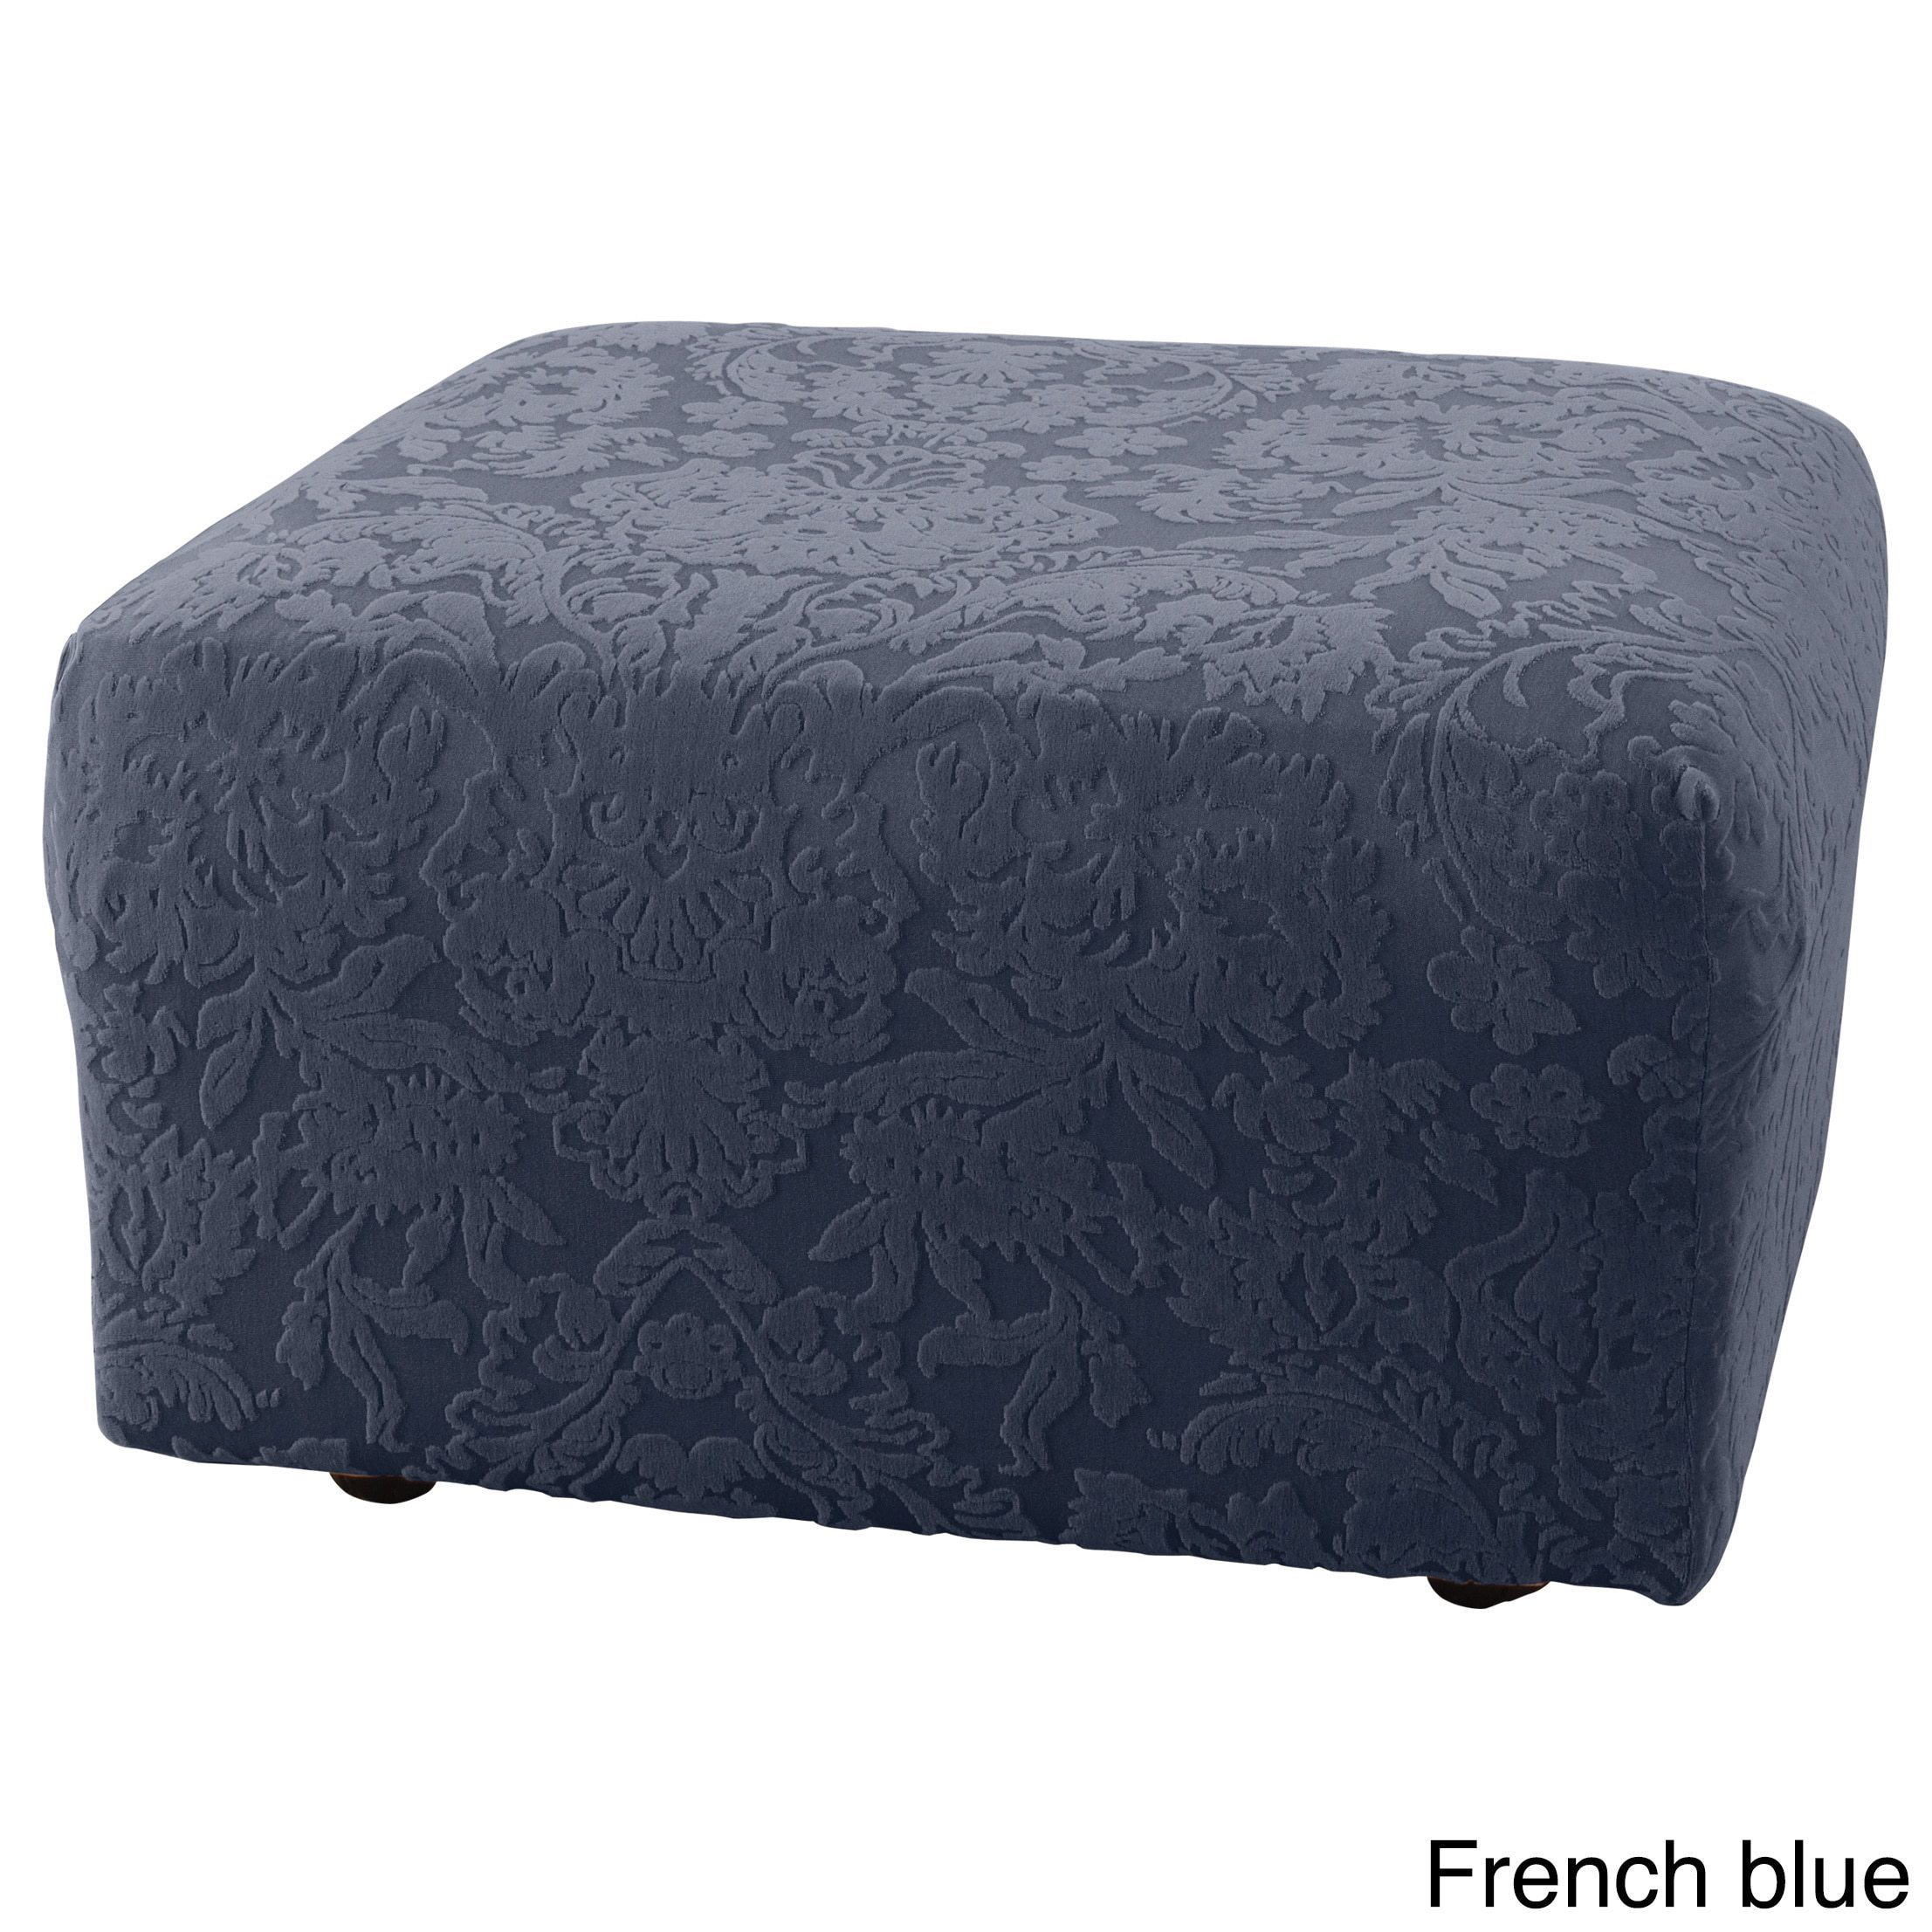 chair set pattern ottoman unique cube slipcovers remodel couch furniture design ikea best surefit ottomans with sleeper cover about for interior beautiful slipcover and on covers